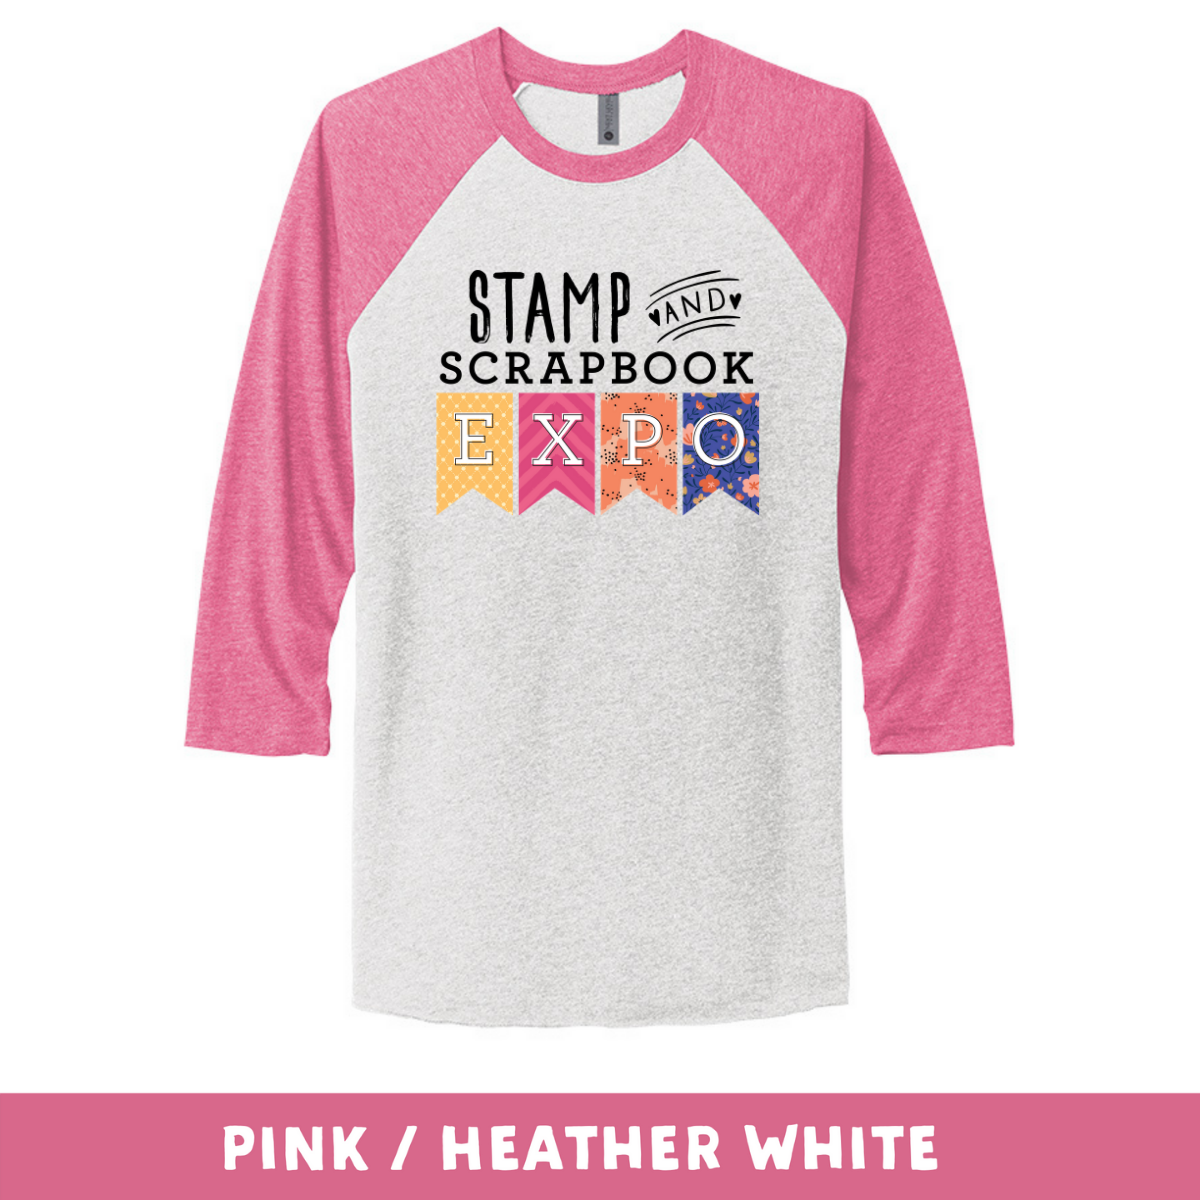 Pink Heather White - Unisex Tri-Blend 3/4 Sleeve Raglan Tee - Stamp & Scrapbook Expo Color Logo